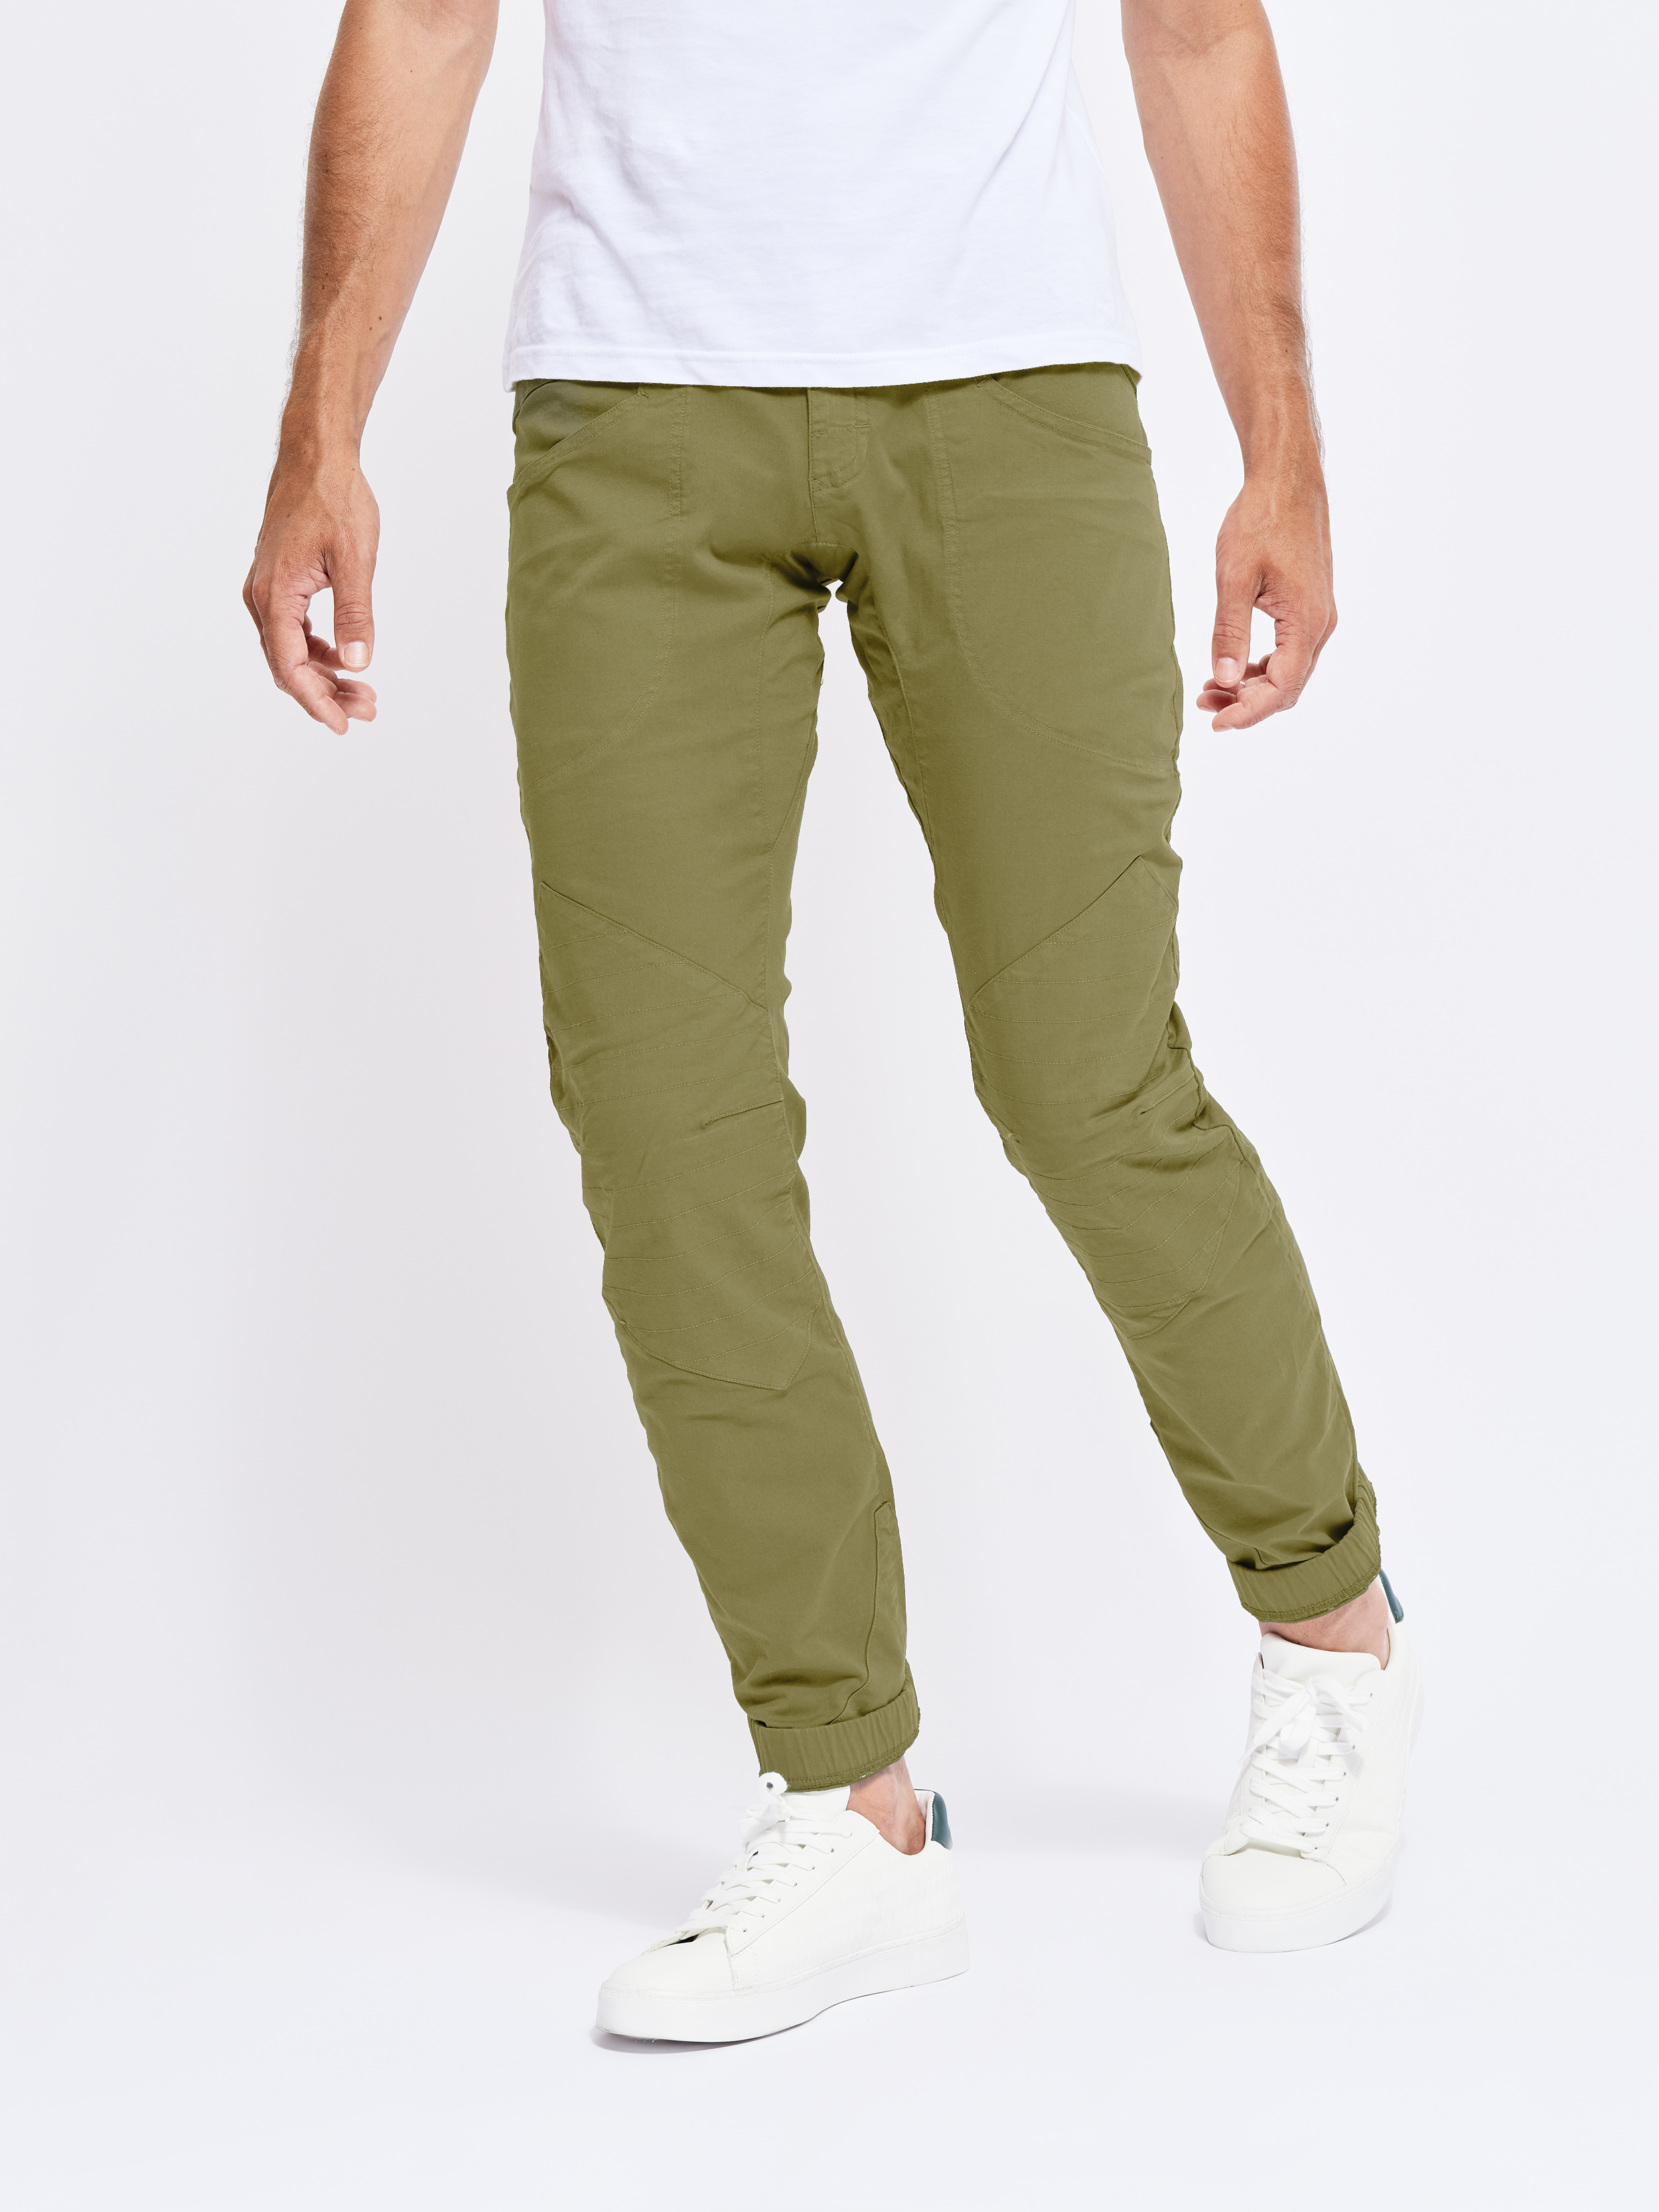 Looking For Wild Fitz Roy Pant - Climbing trousers - Men's